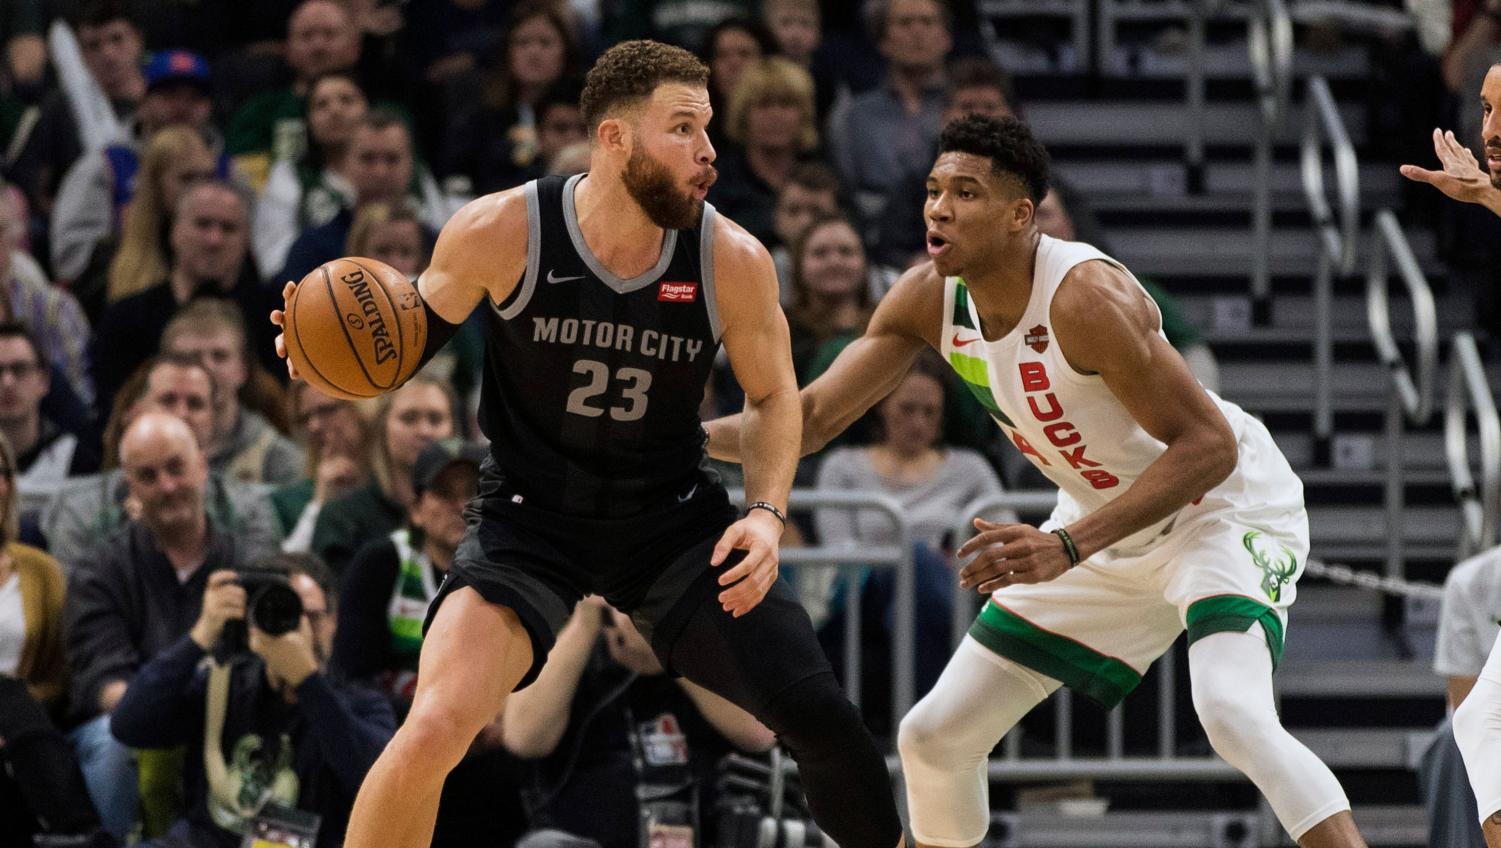 49986781ceb2 Photo by Jeff Hanish USA Today Sports Blake Griffin (23) backs down  defender Giannis (34).